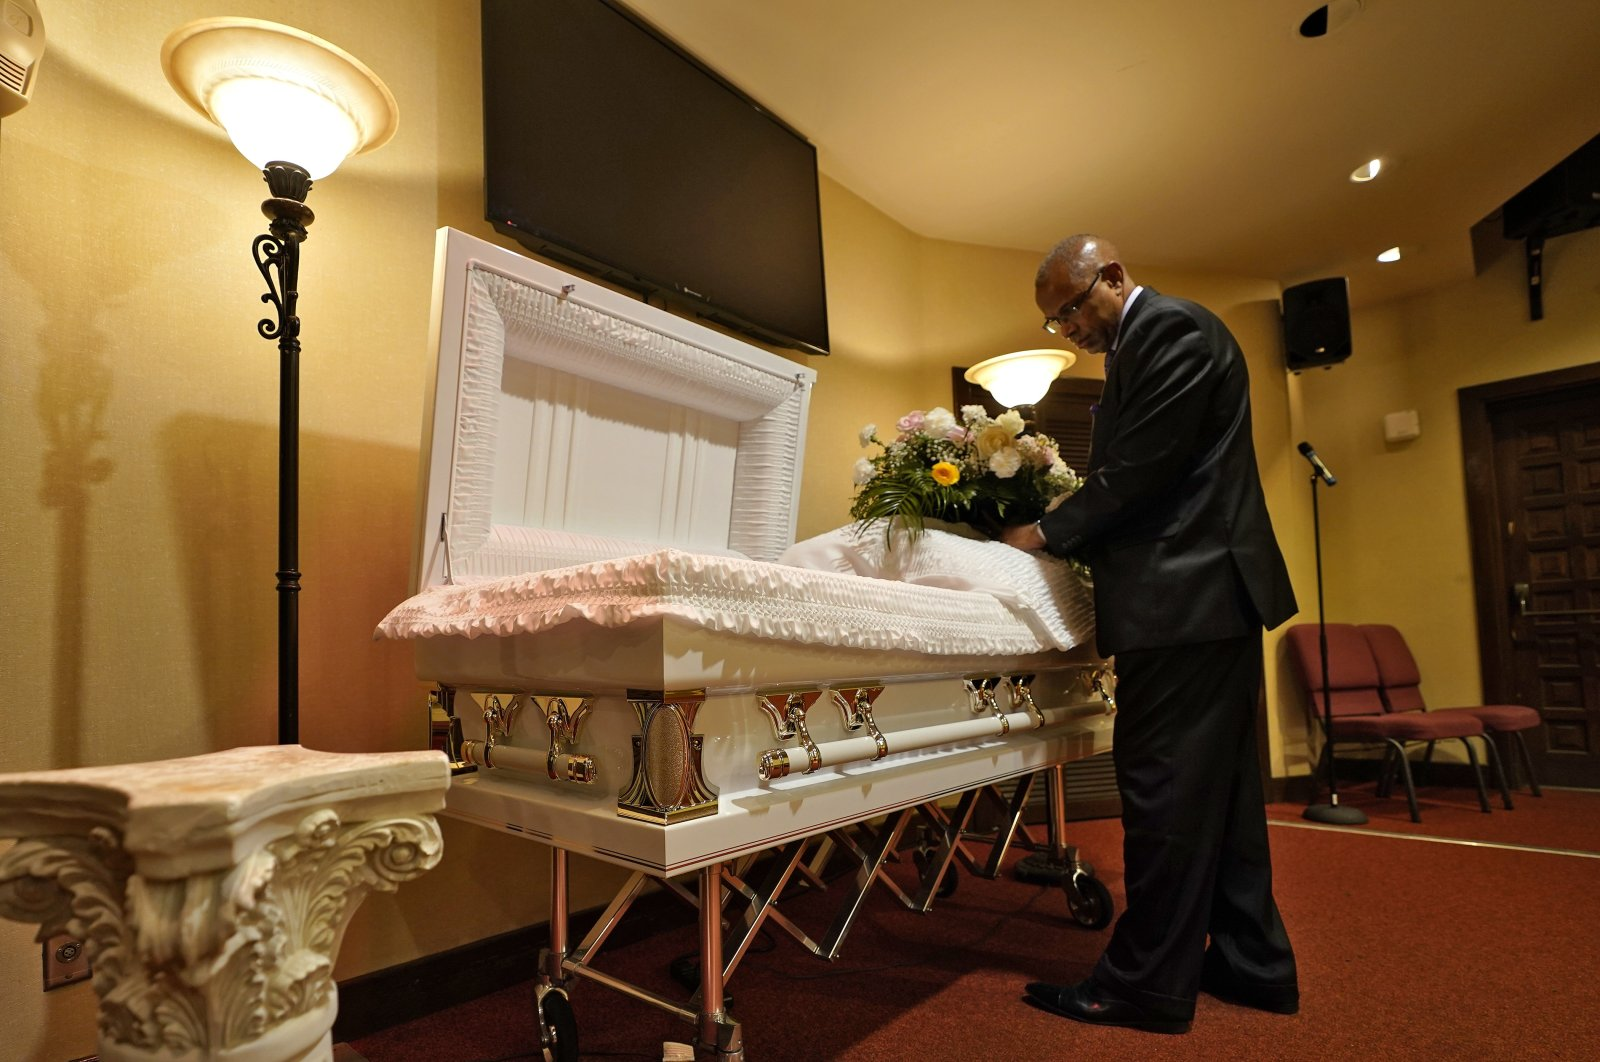 A funeral director arranges flowers on a casket before a service in Tampa, Florida, U.S., Sept. 2, 2021. (AP Photo)